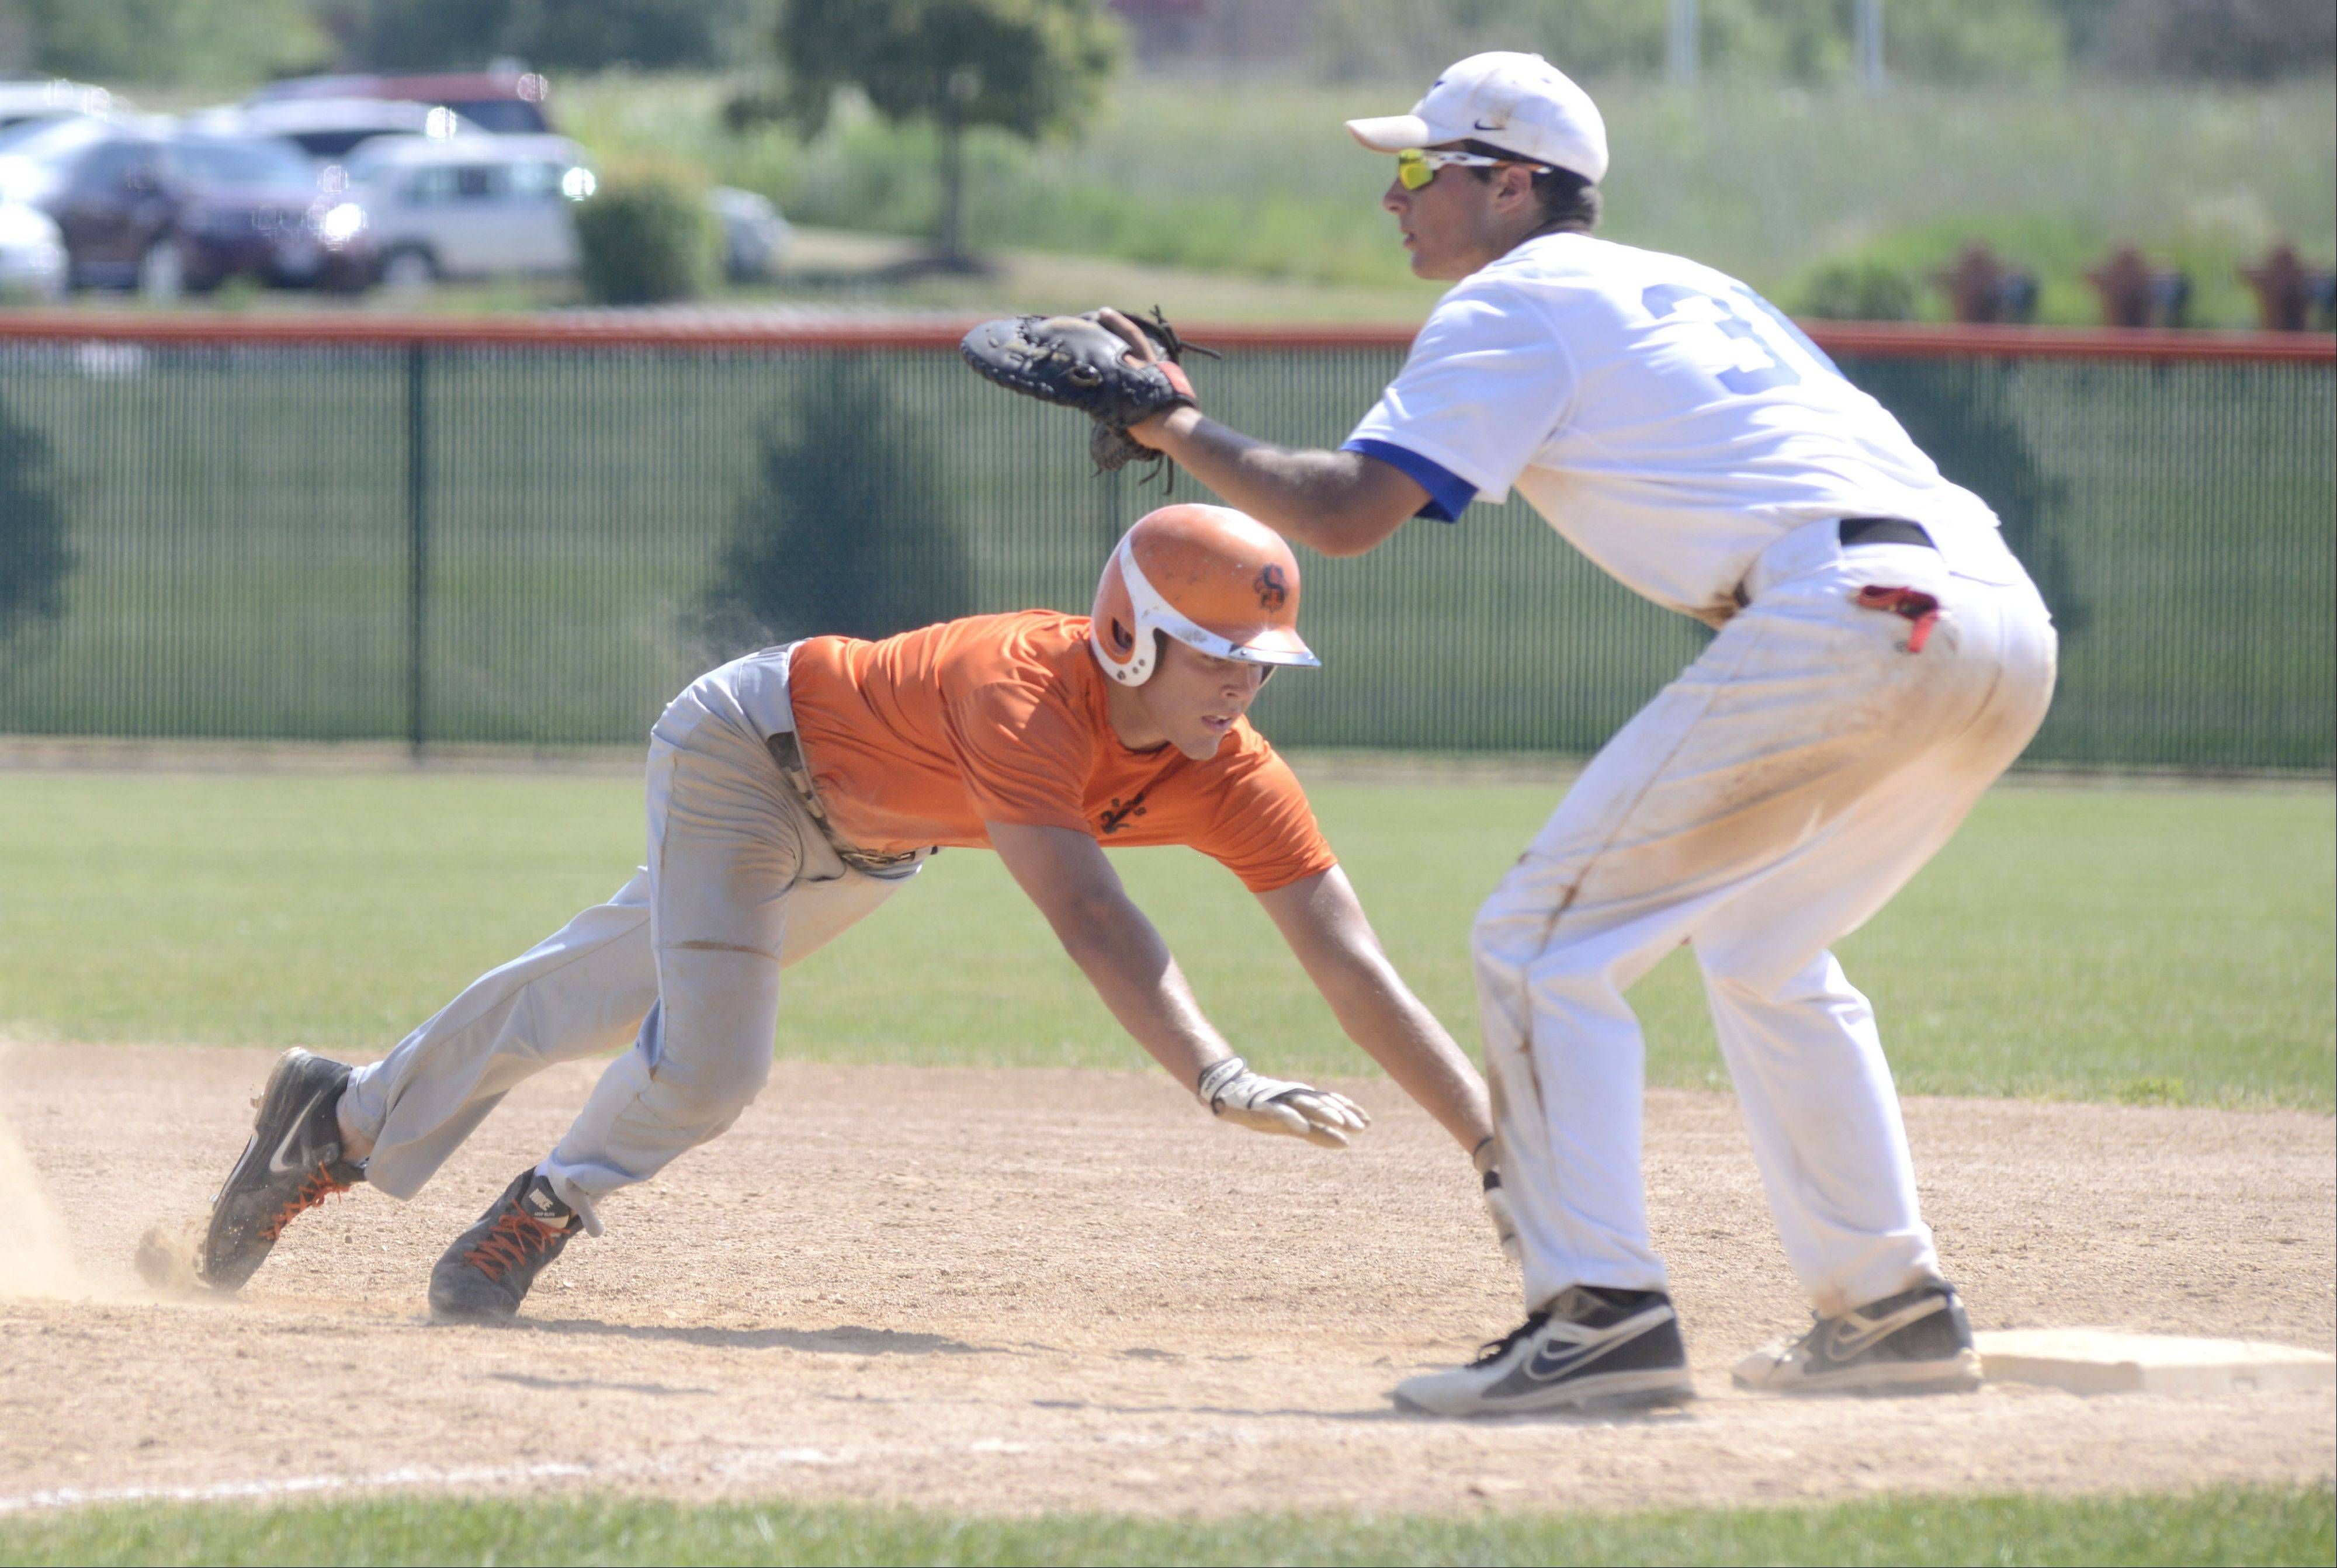 St. Charles East's Erik Anderson dives back safely to first base before St. Charles North's Joe Kuczek can tag him out in the fourth inning of the St. Charles East summer tournament semifinals on Wednesday, July 17.